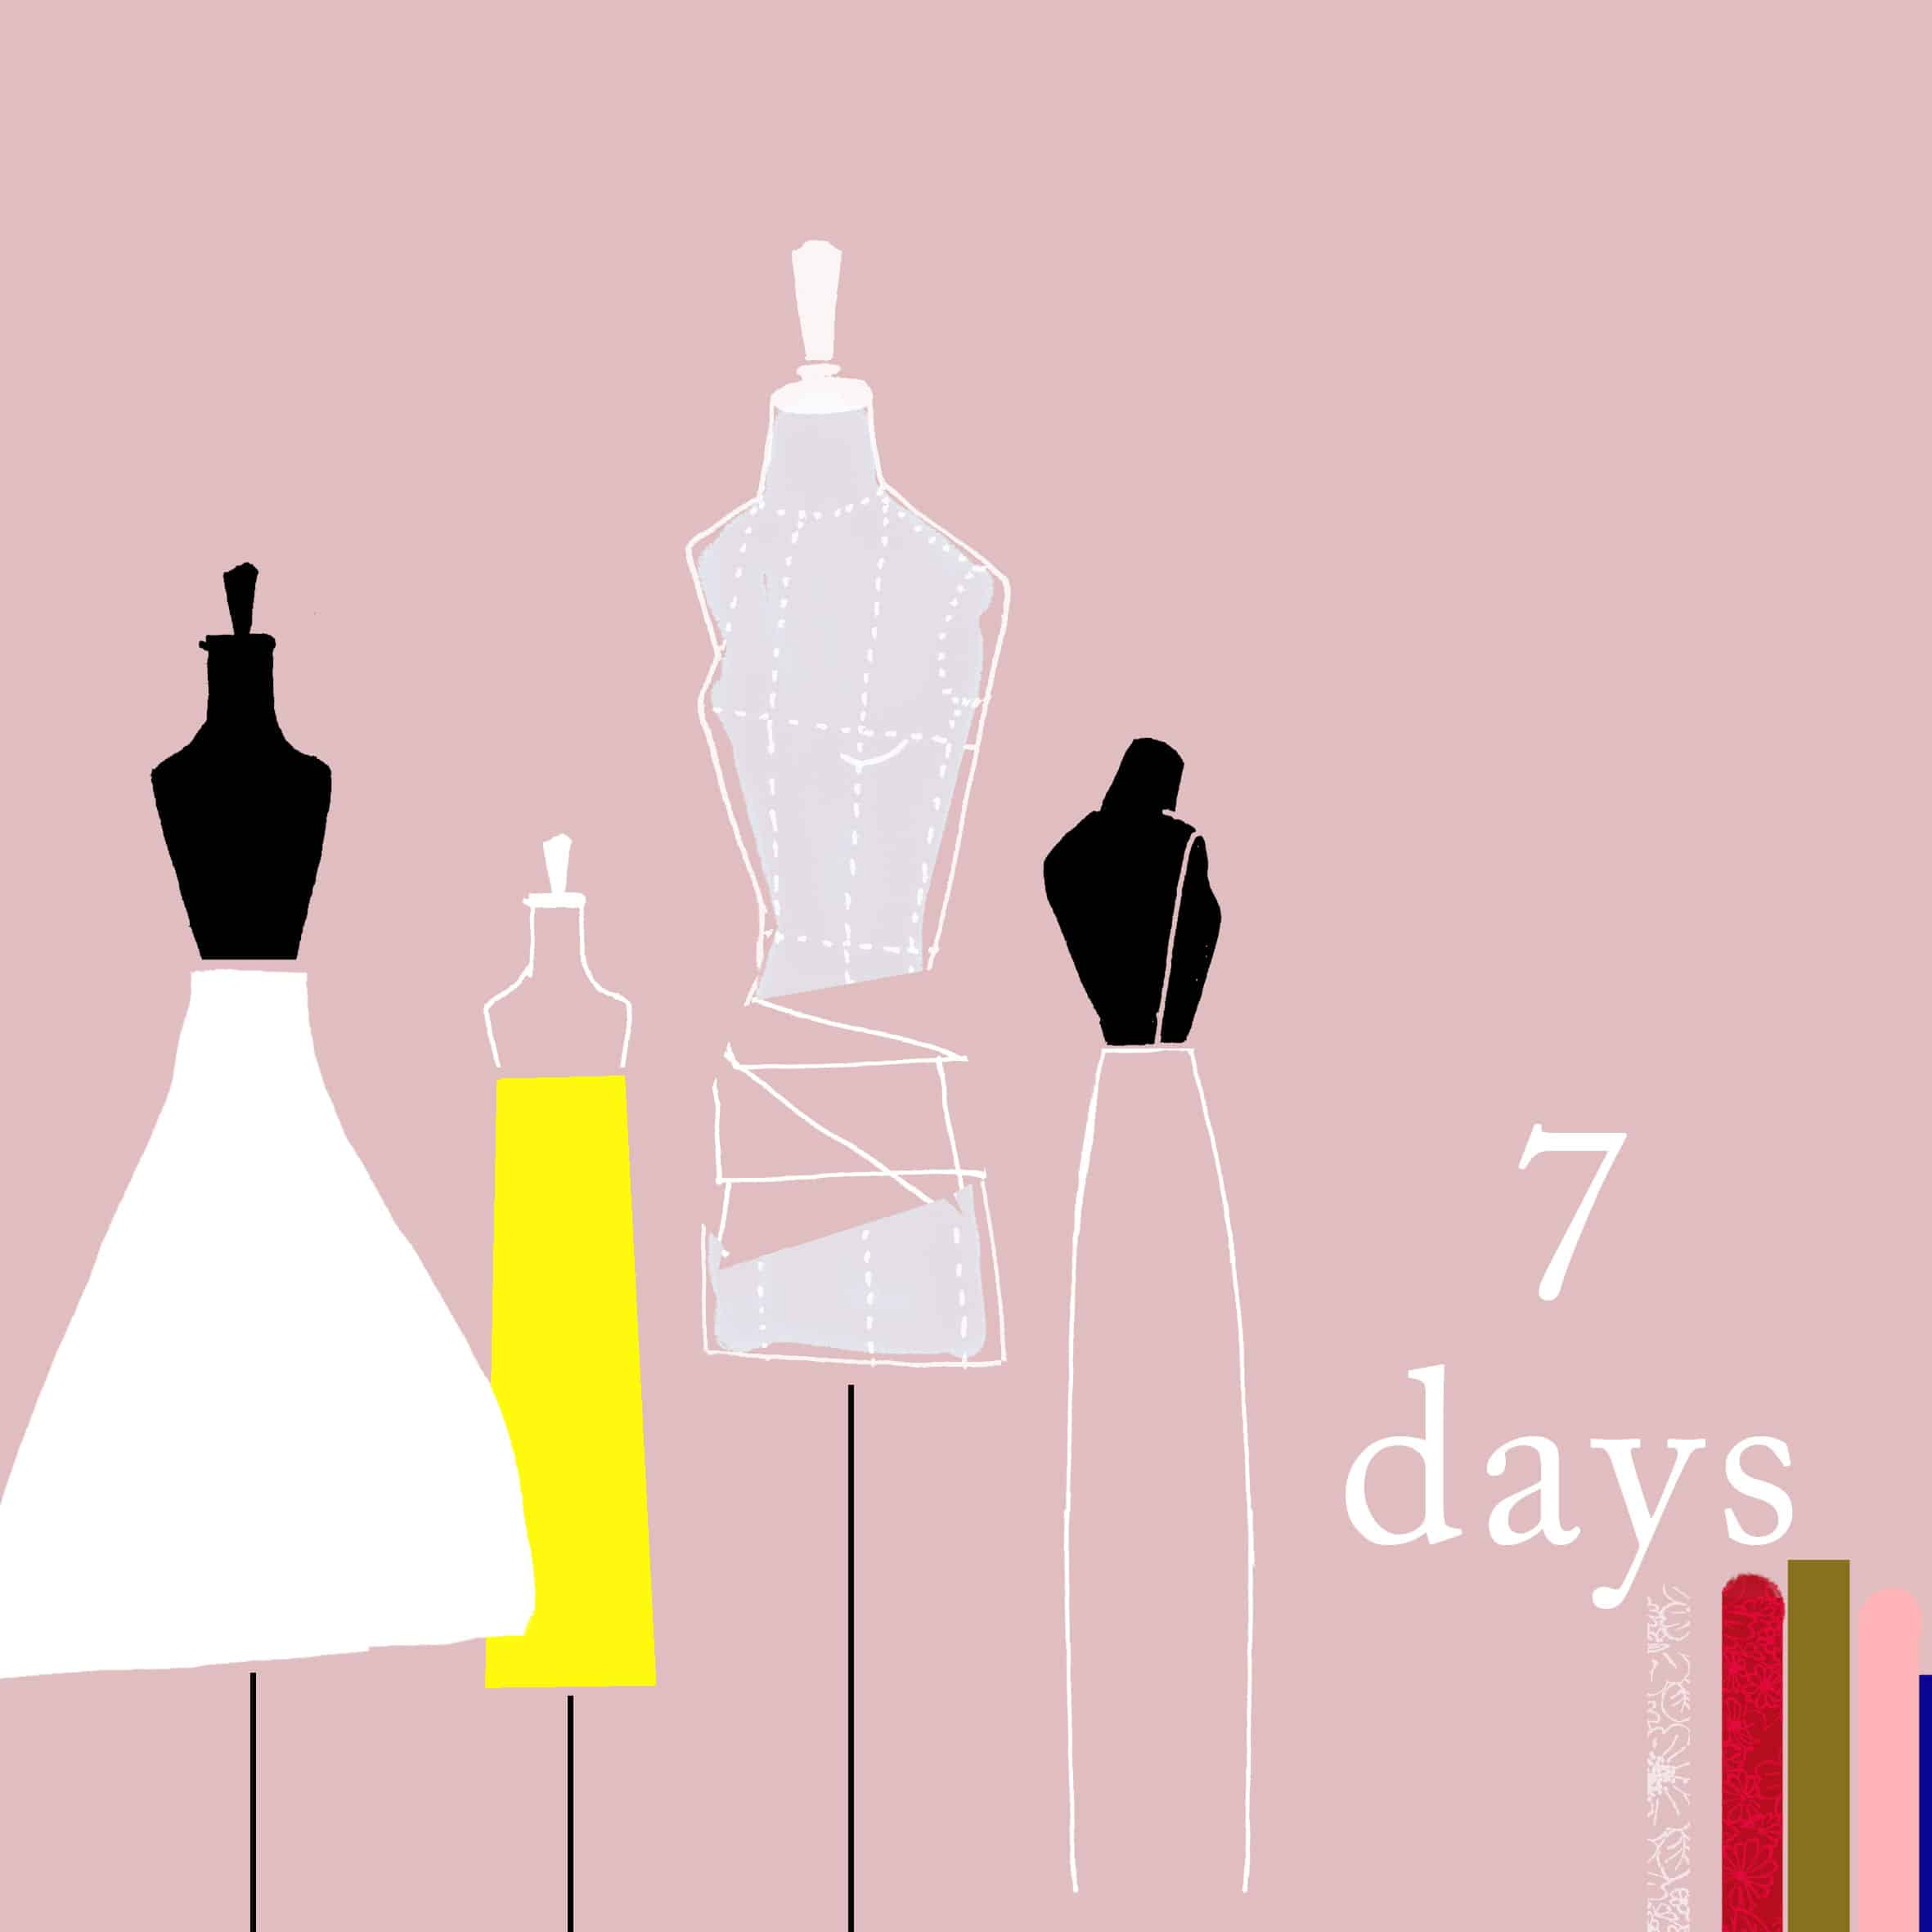 Different sewing mannequin with half-finished dresses. Colors pink in the background and saturated on the fabrics